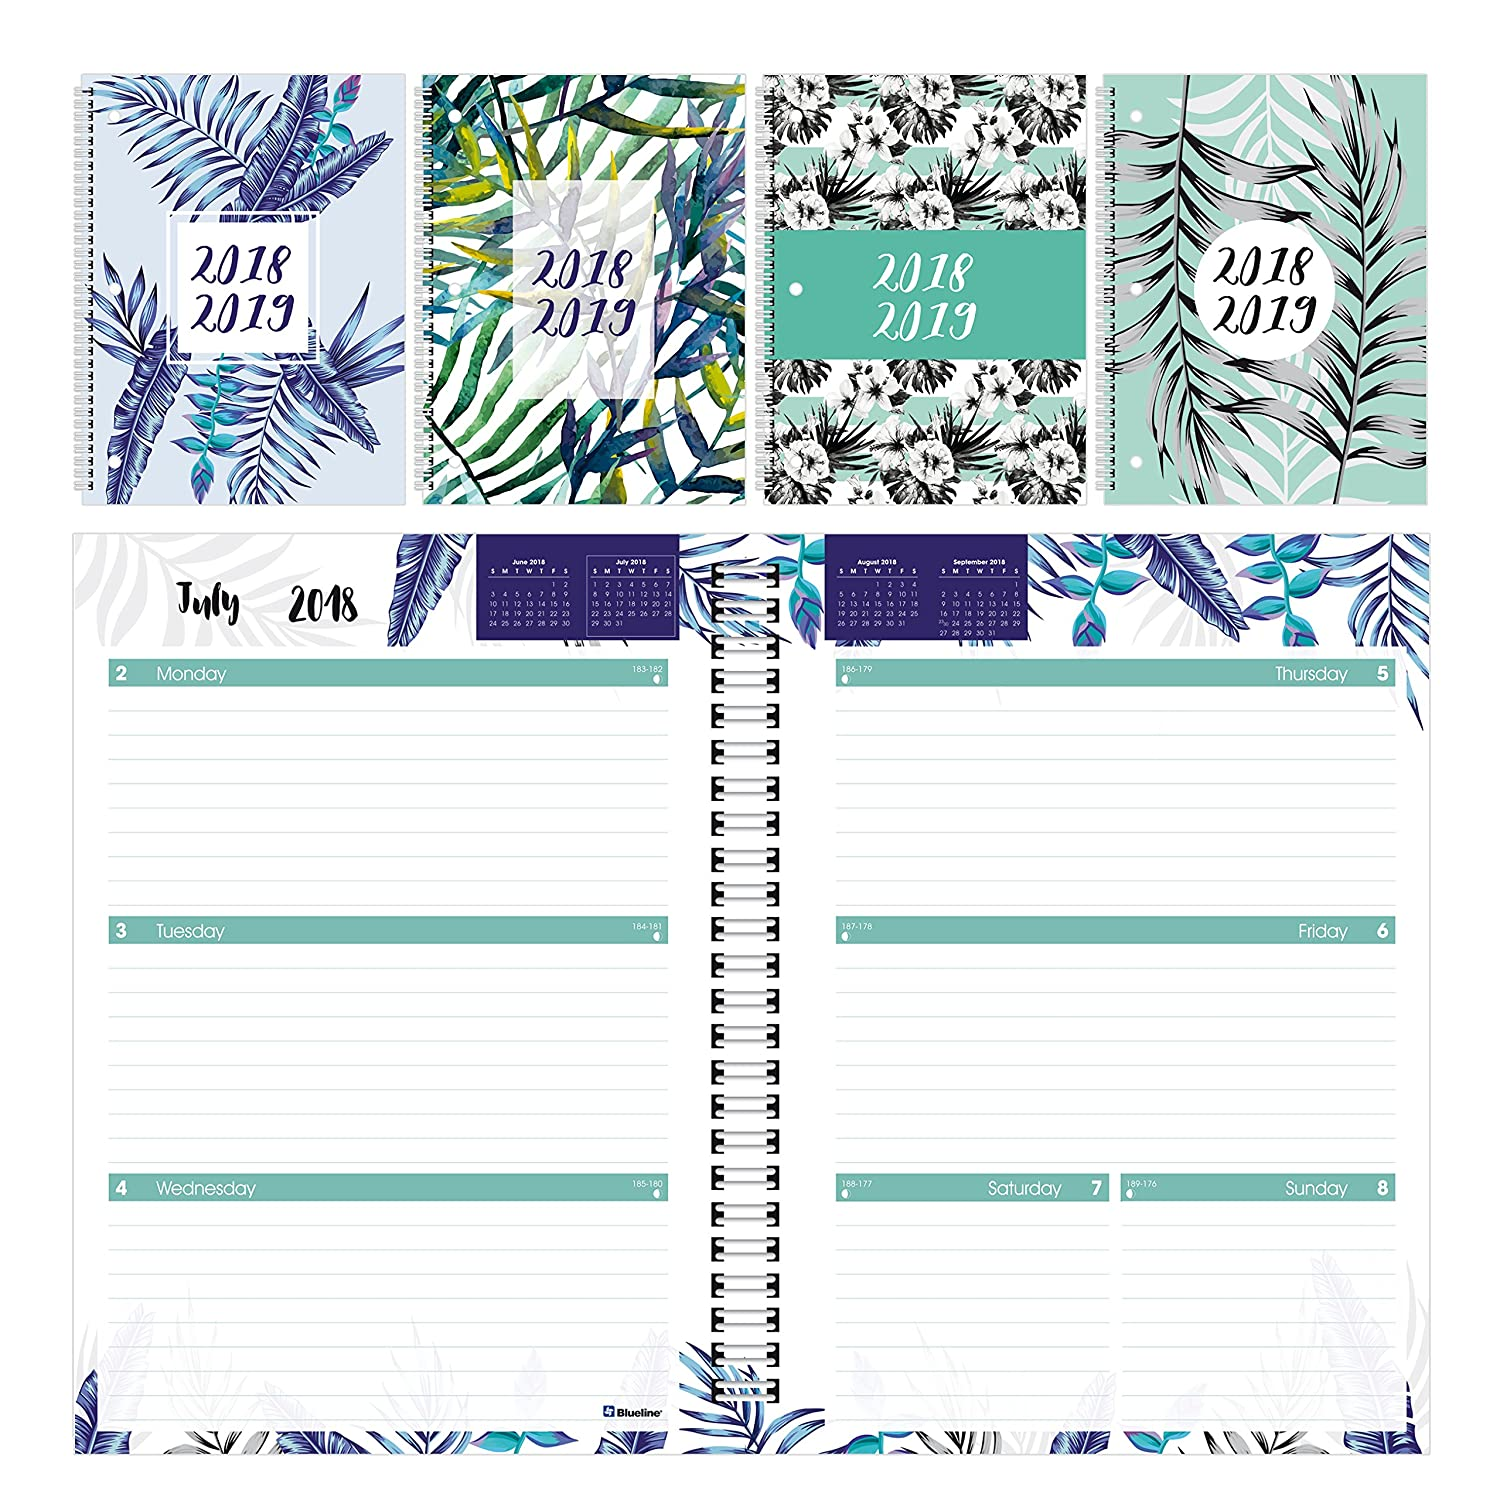 Brownline 2018-2019 Weekly/Monthly Academic Planner, Tropical Designs, 10.25x7.625, July to July, Assorted Designs, English (CA859PT.ASX-2019) 10.25x7.625 Blueline Canada CA859PT.ASX-19